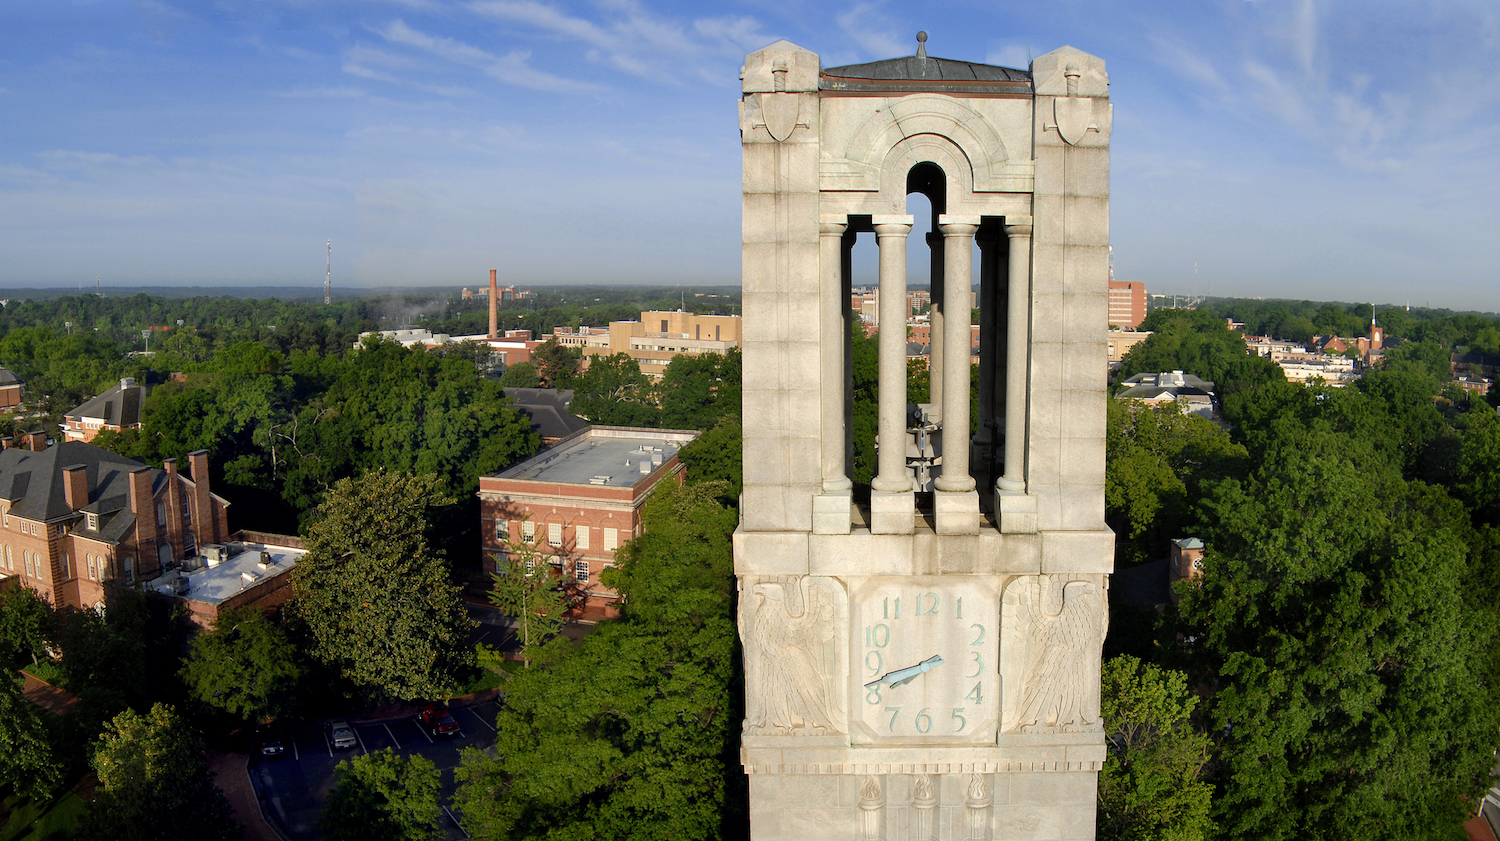 NC State Belltower and campus scene